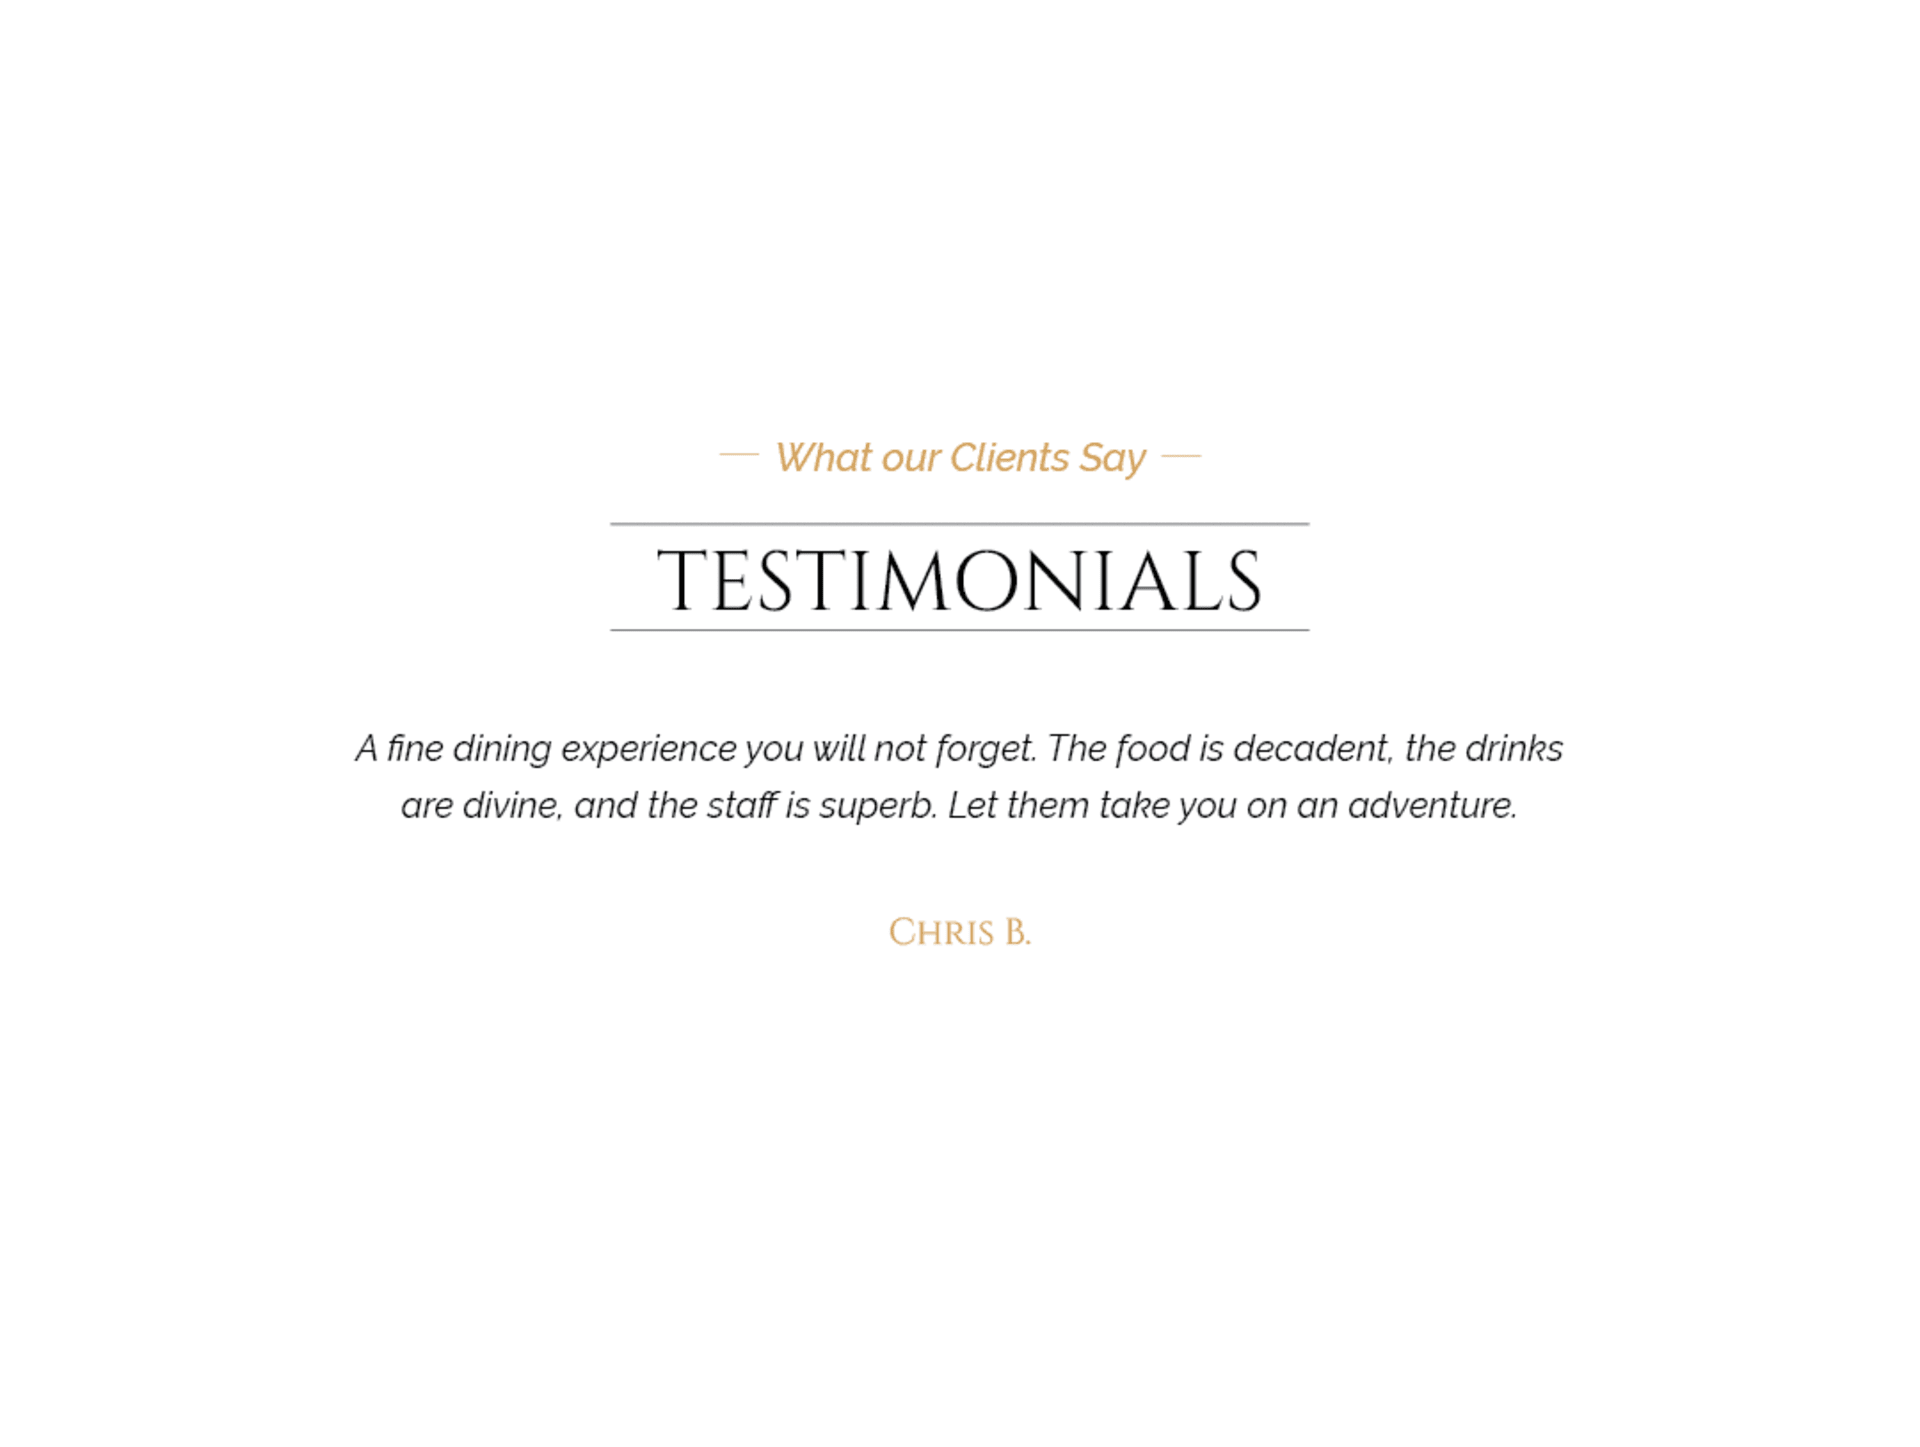 Client testimonial: A fine dining experience you will not forget. The food is decadent, the drinks are divine and the staff is superb. Let them take you on an adventure. From Chris B